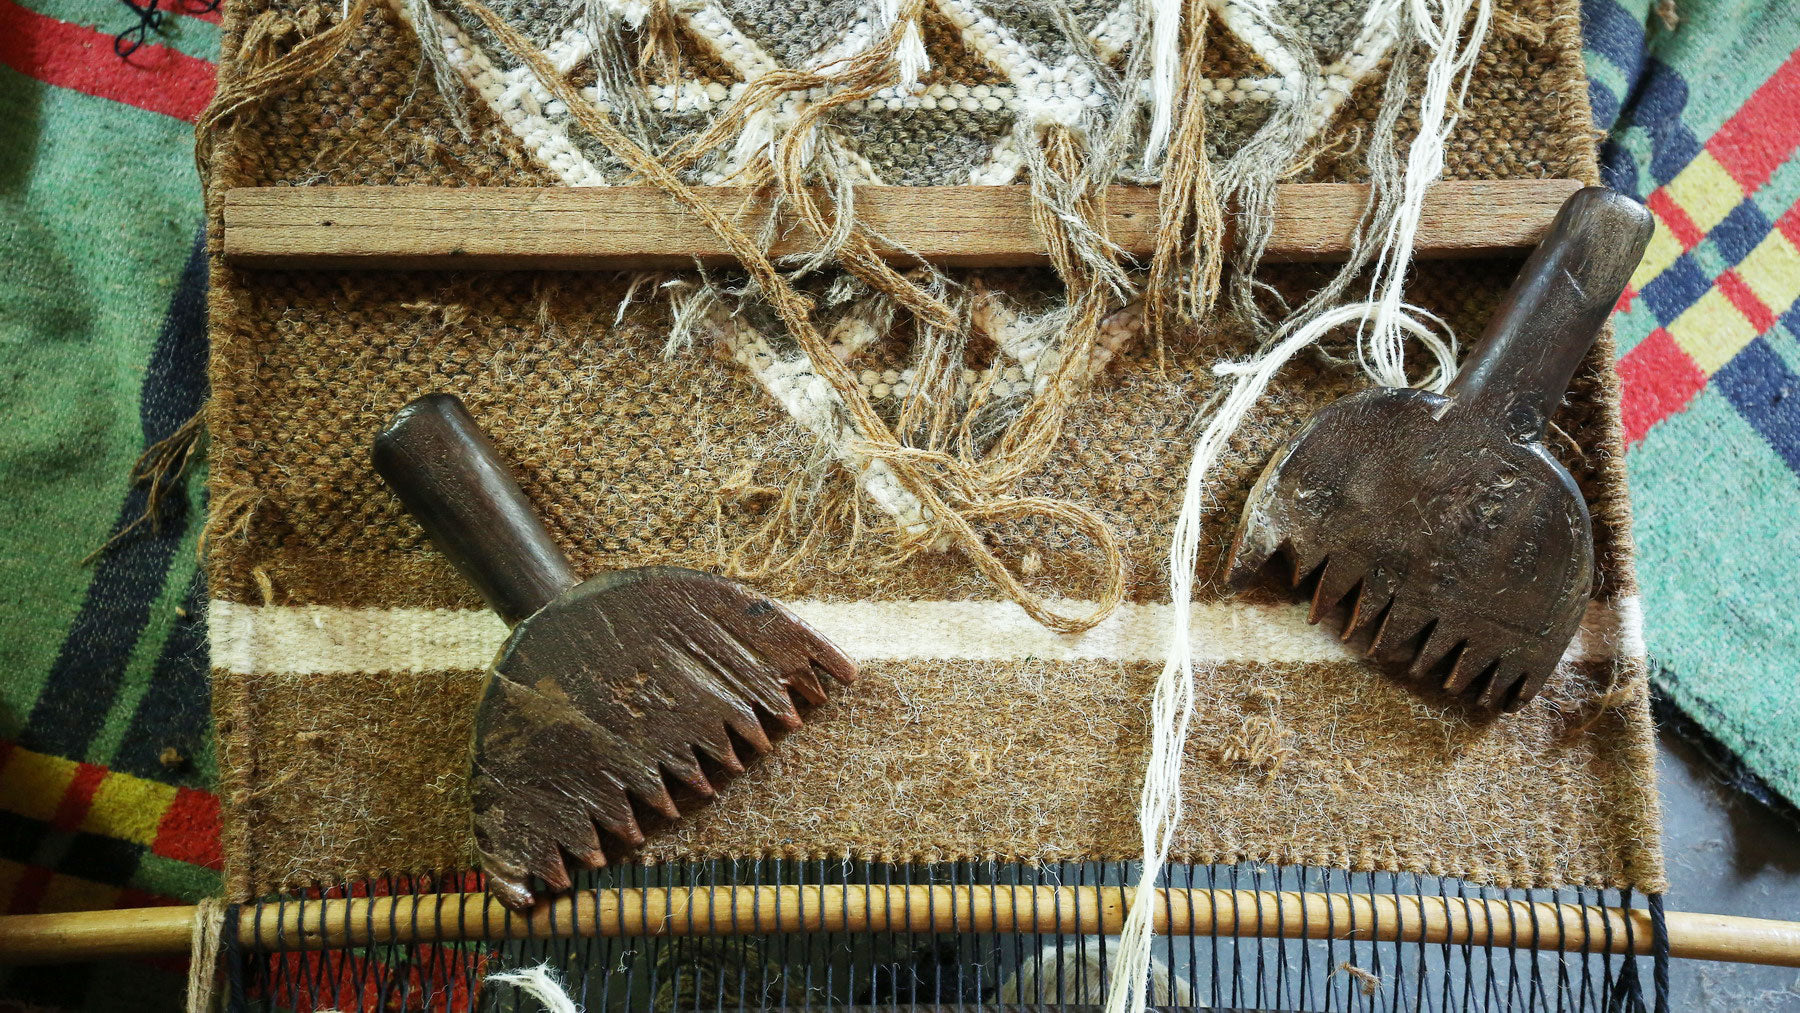 Haatho (wooden comb) used in hand weaving process